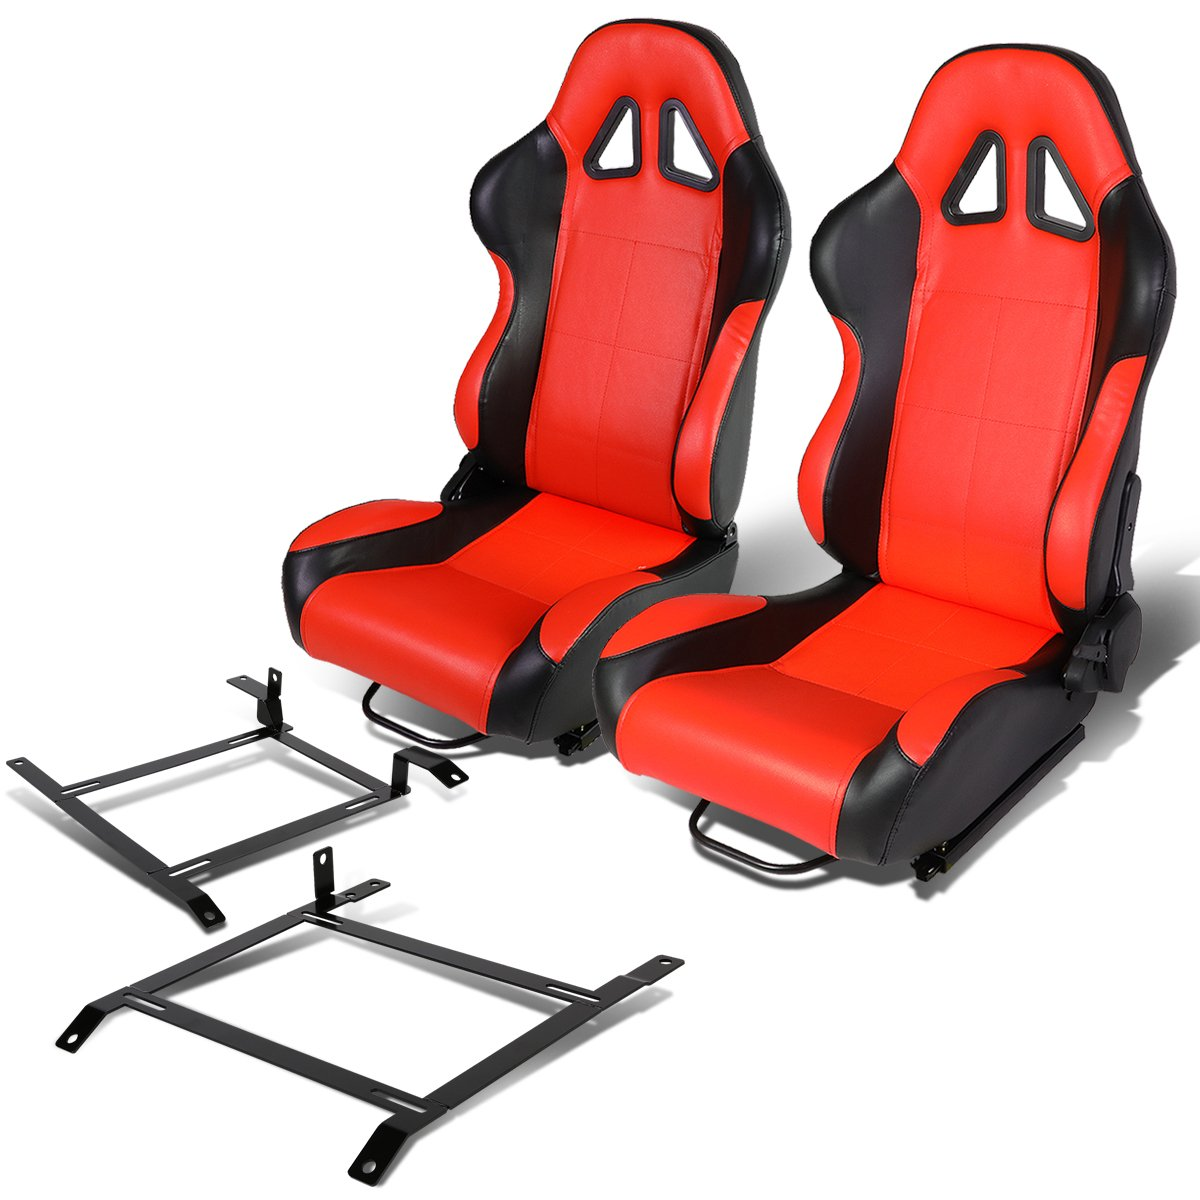 Pair of Full Reclinable Black and Red Carbon Look PVC Leather Type-4 Racing Seat+Adjustable Sliders